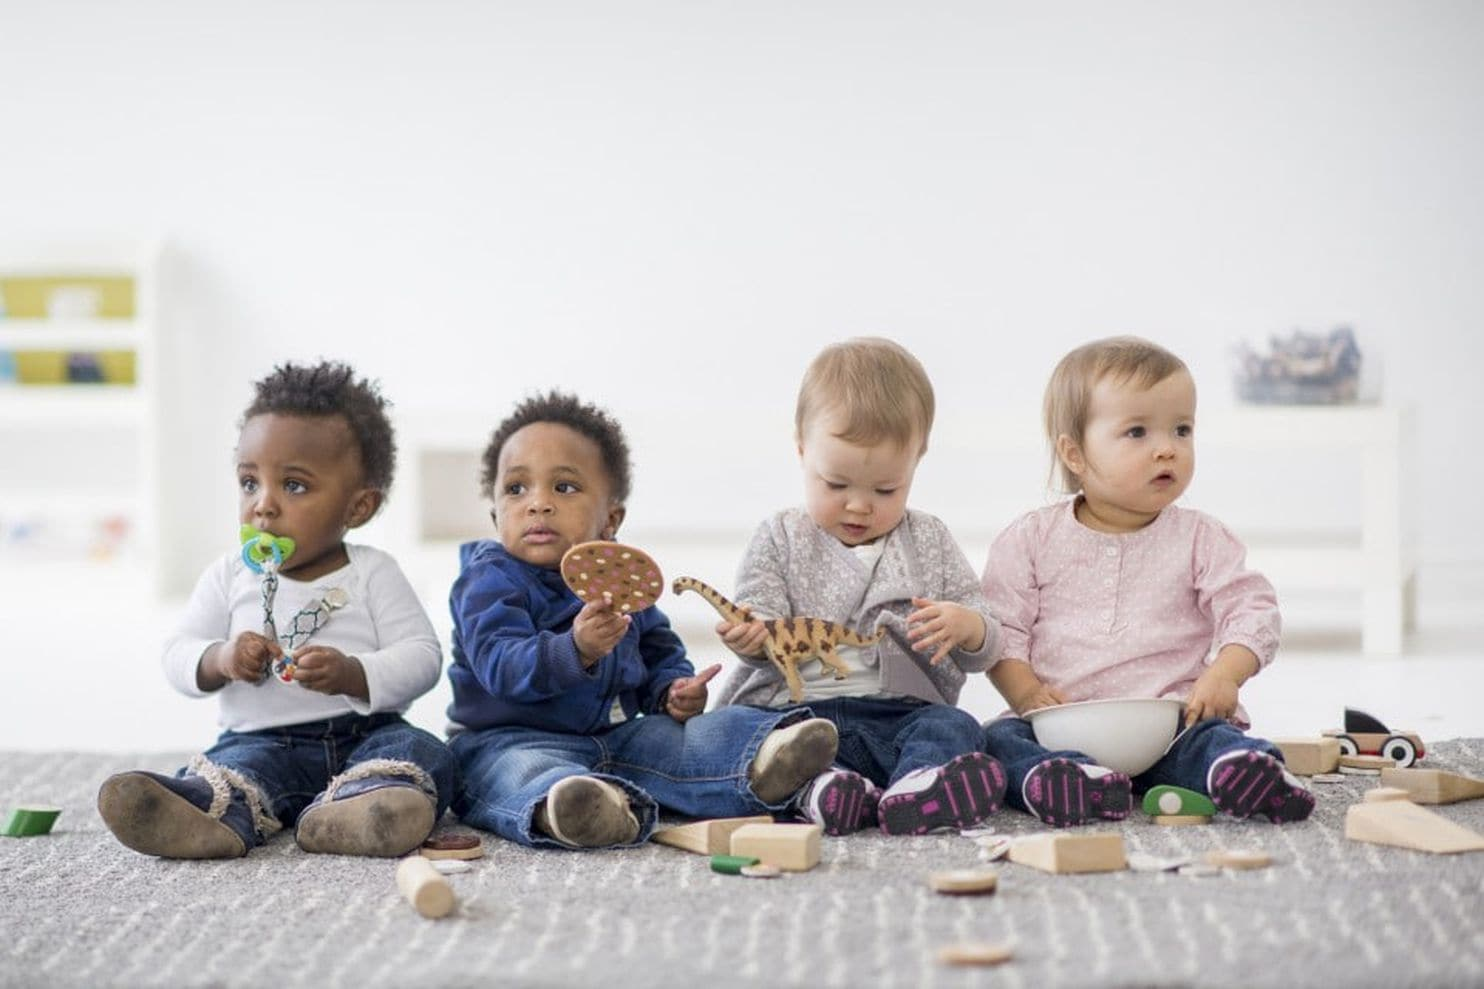 By Age 3 Inequality Is Clear Rich Kids Attend School